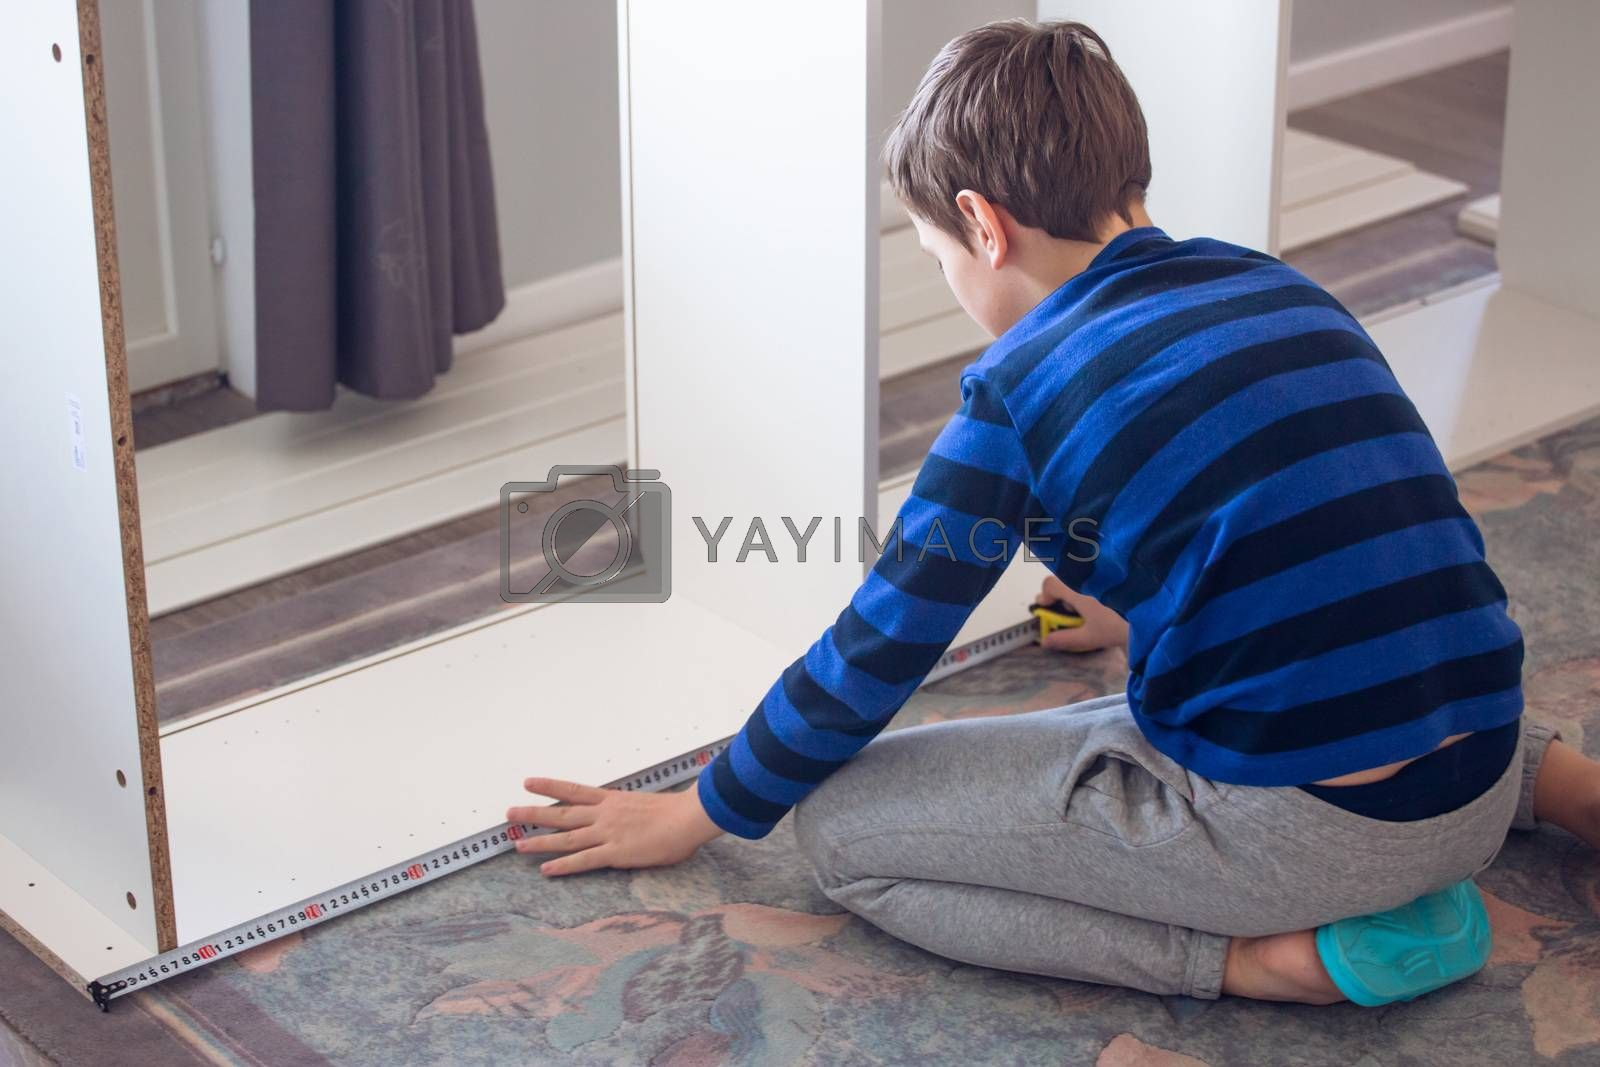 Hobby, carpentry, woodwork, craft, skill concept - boy making constructing assembling furniture at home